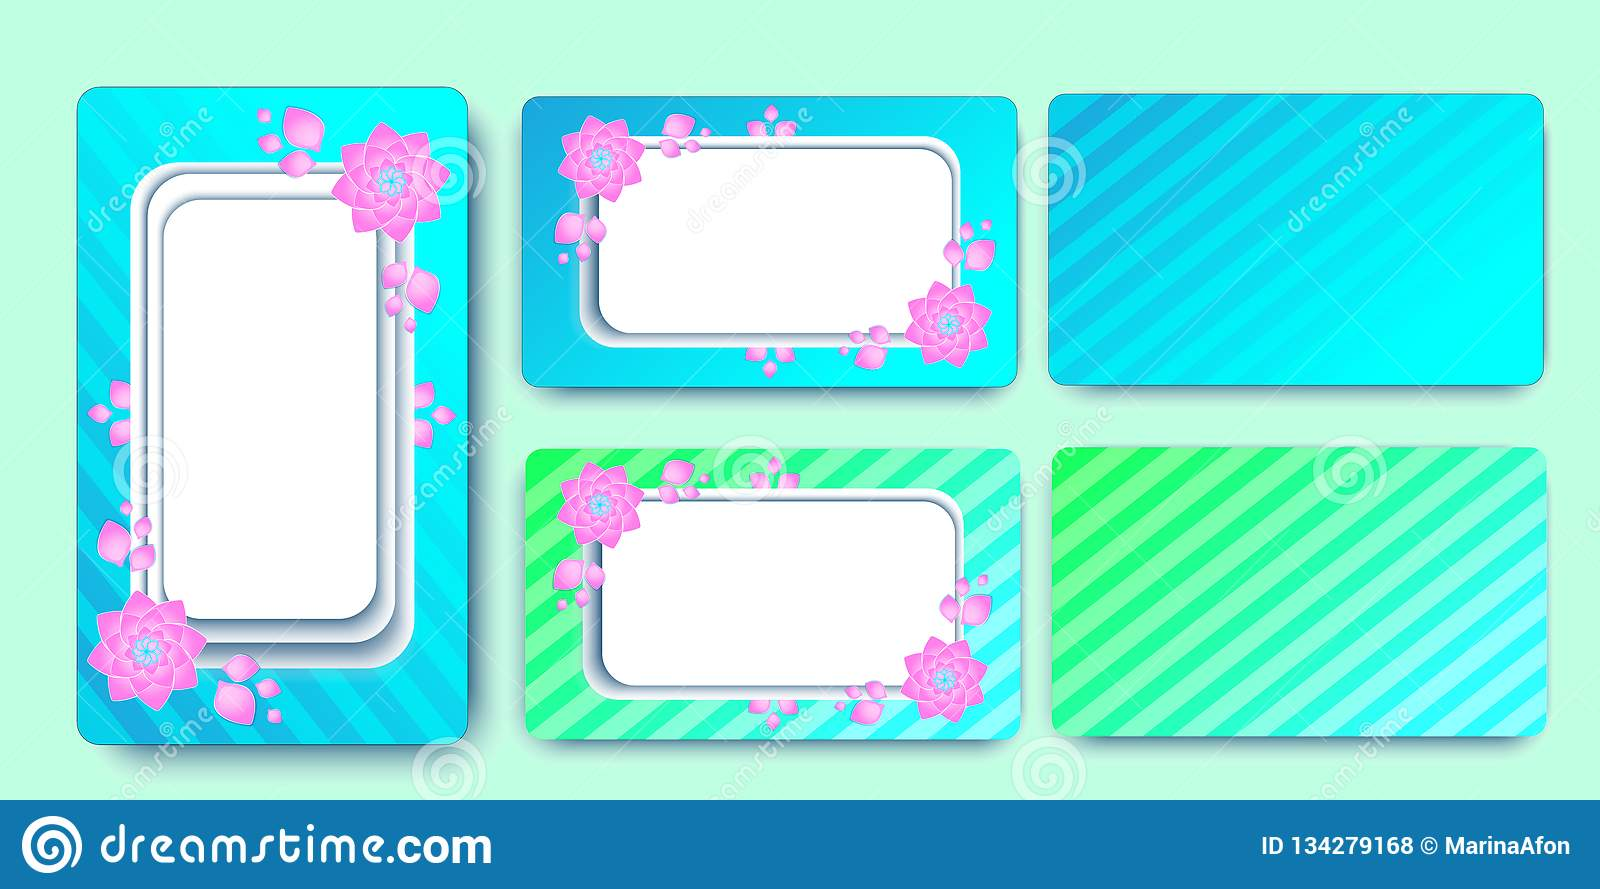 Invite wedding cards template flowers. Colored stripes. EPS 10 vector illustration.